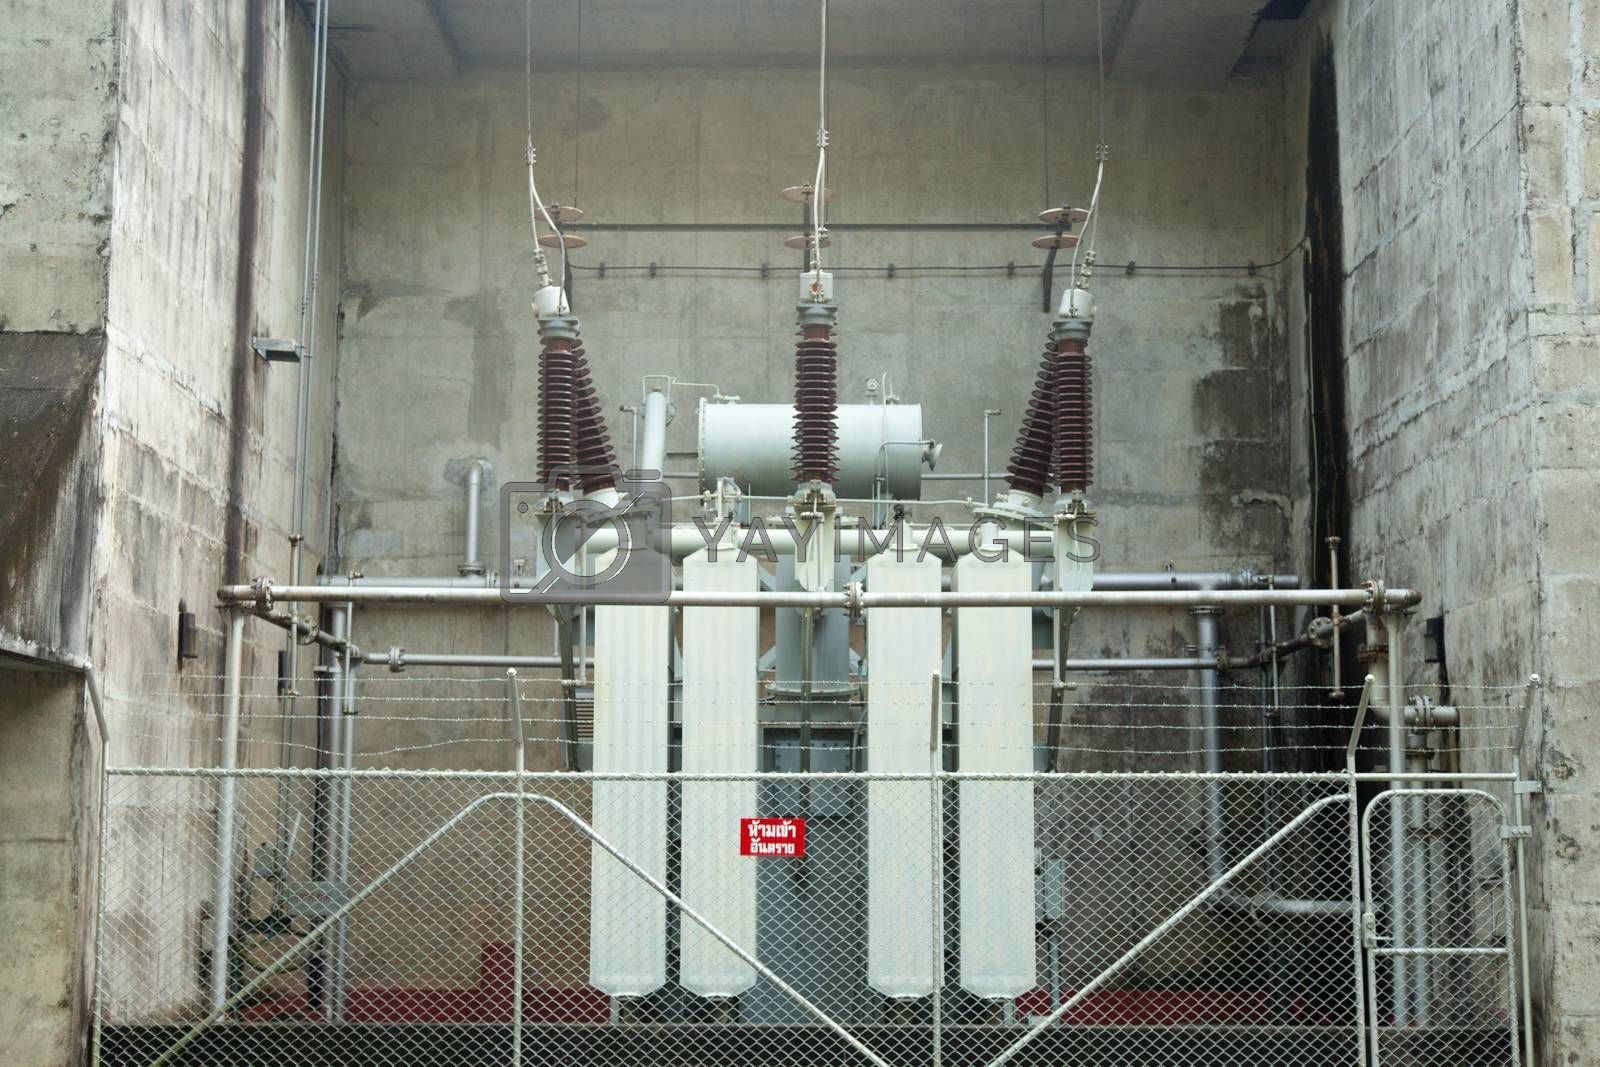 Transformer Commuter pressure to rise. Installed in the power plant.